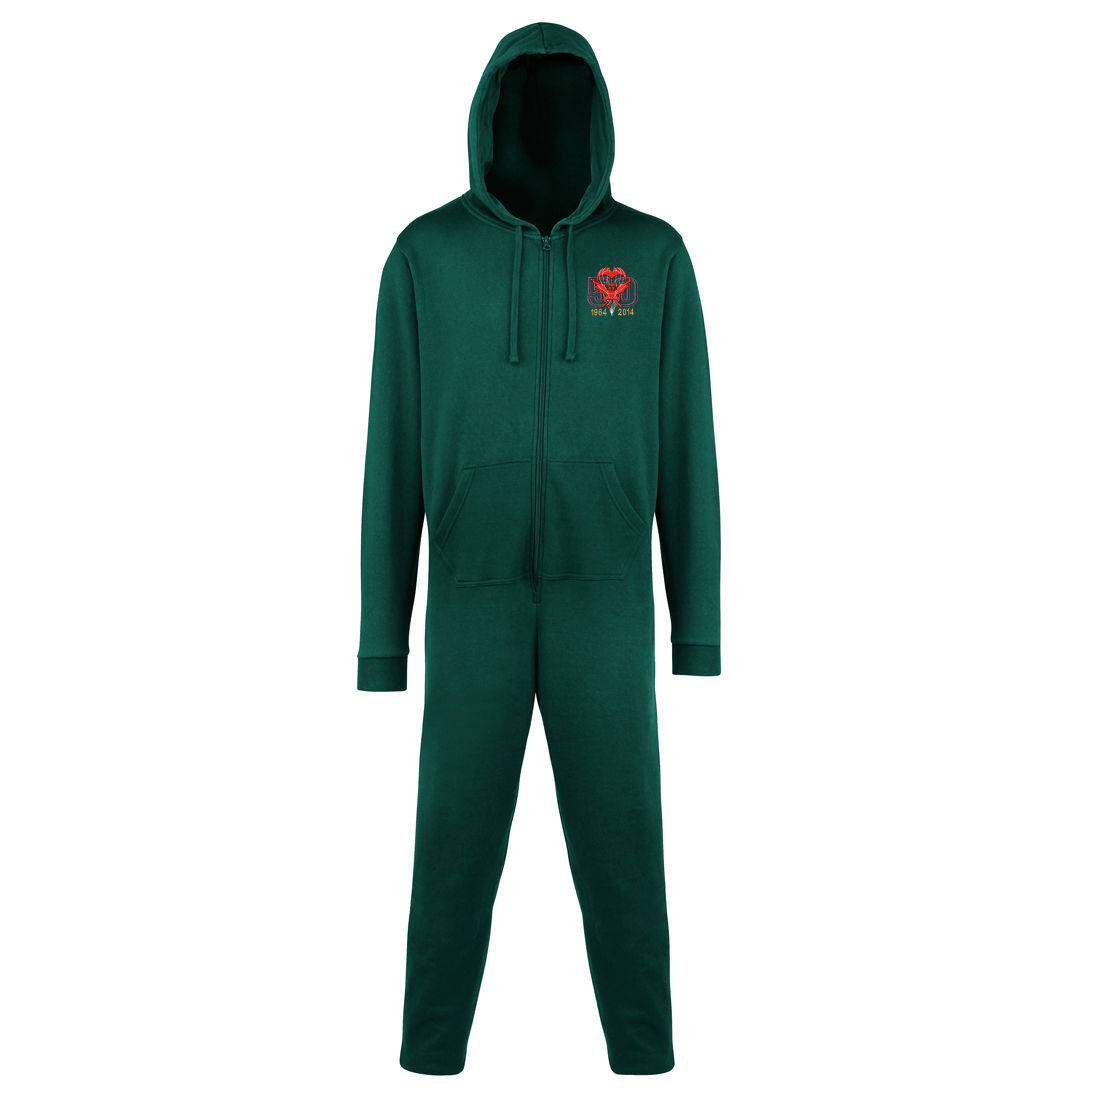 Onesie (All-in-One)